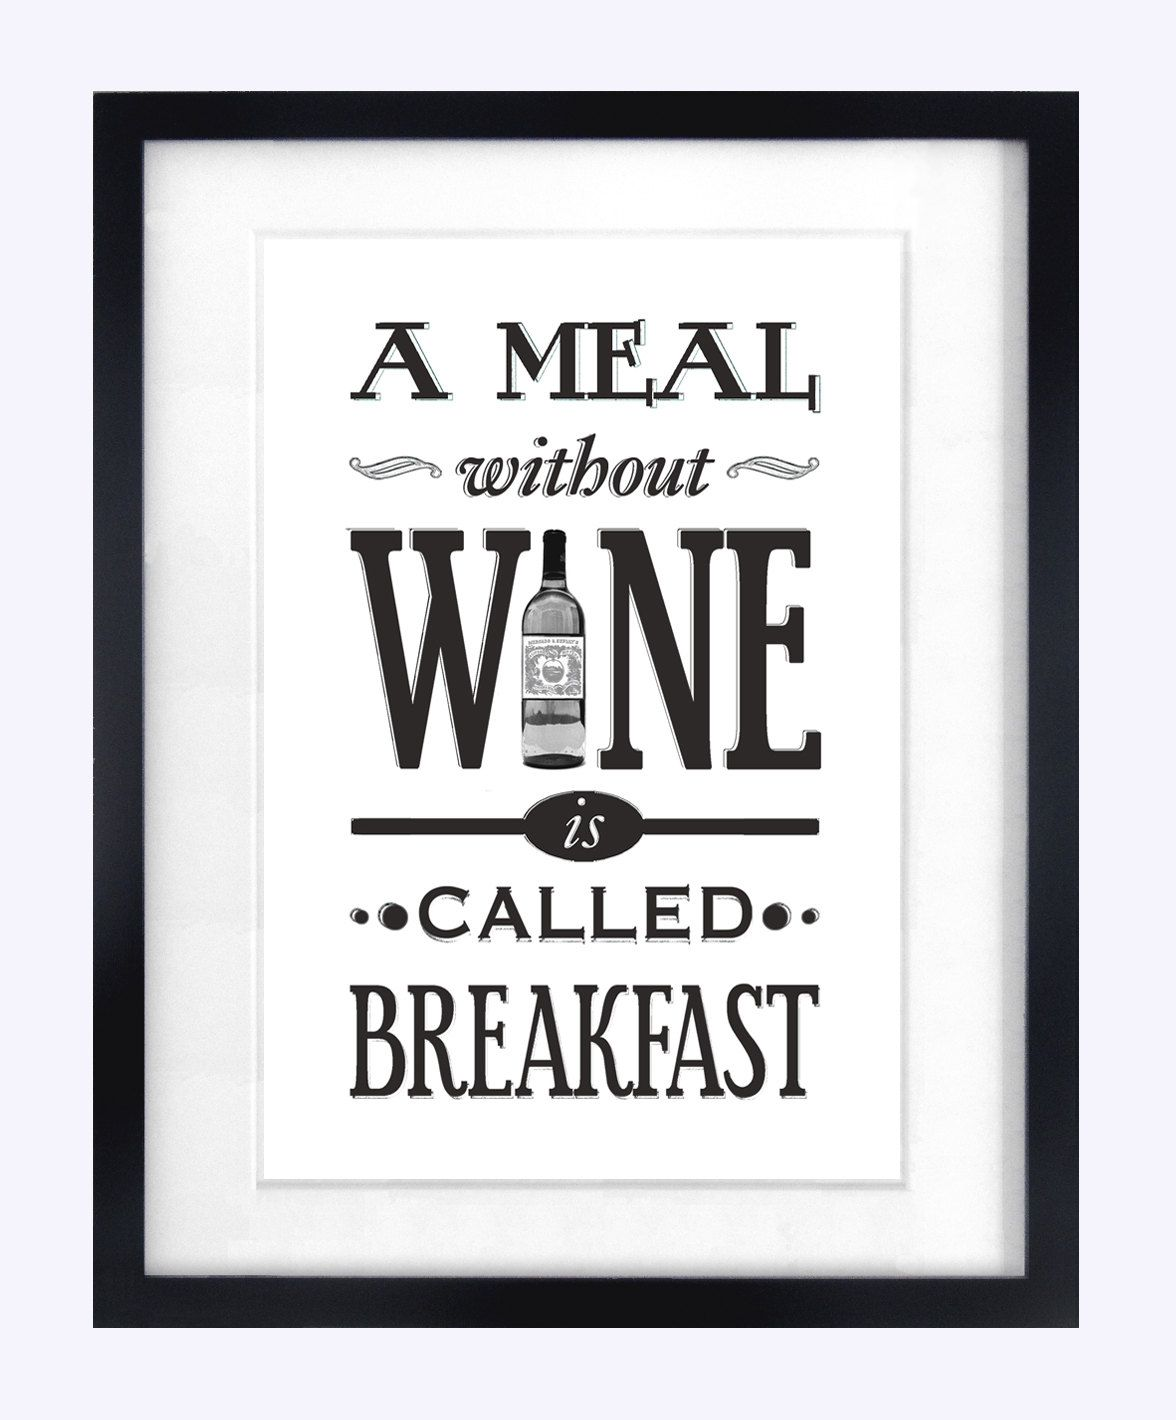 Kitchen art wine - Wine Art Print Kitchen Poster Typographic Print Gift For Her Quote Print Wine Gift Shabby Chic Wine Print Kitchen Art Black White